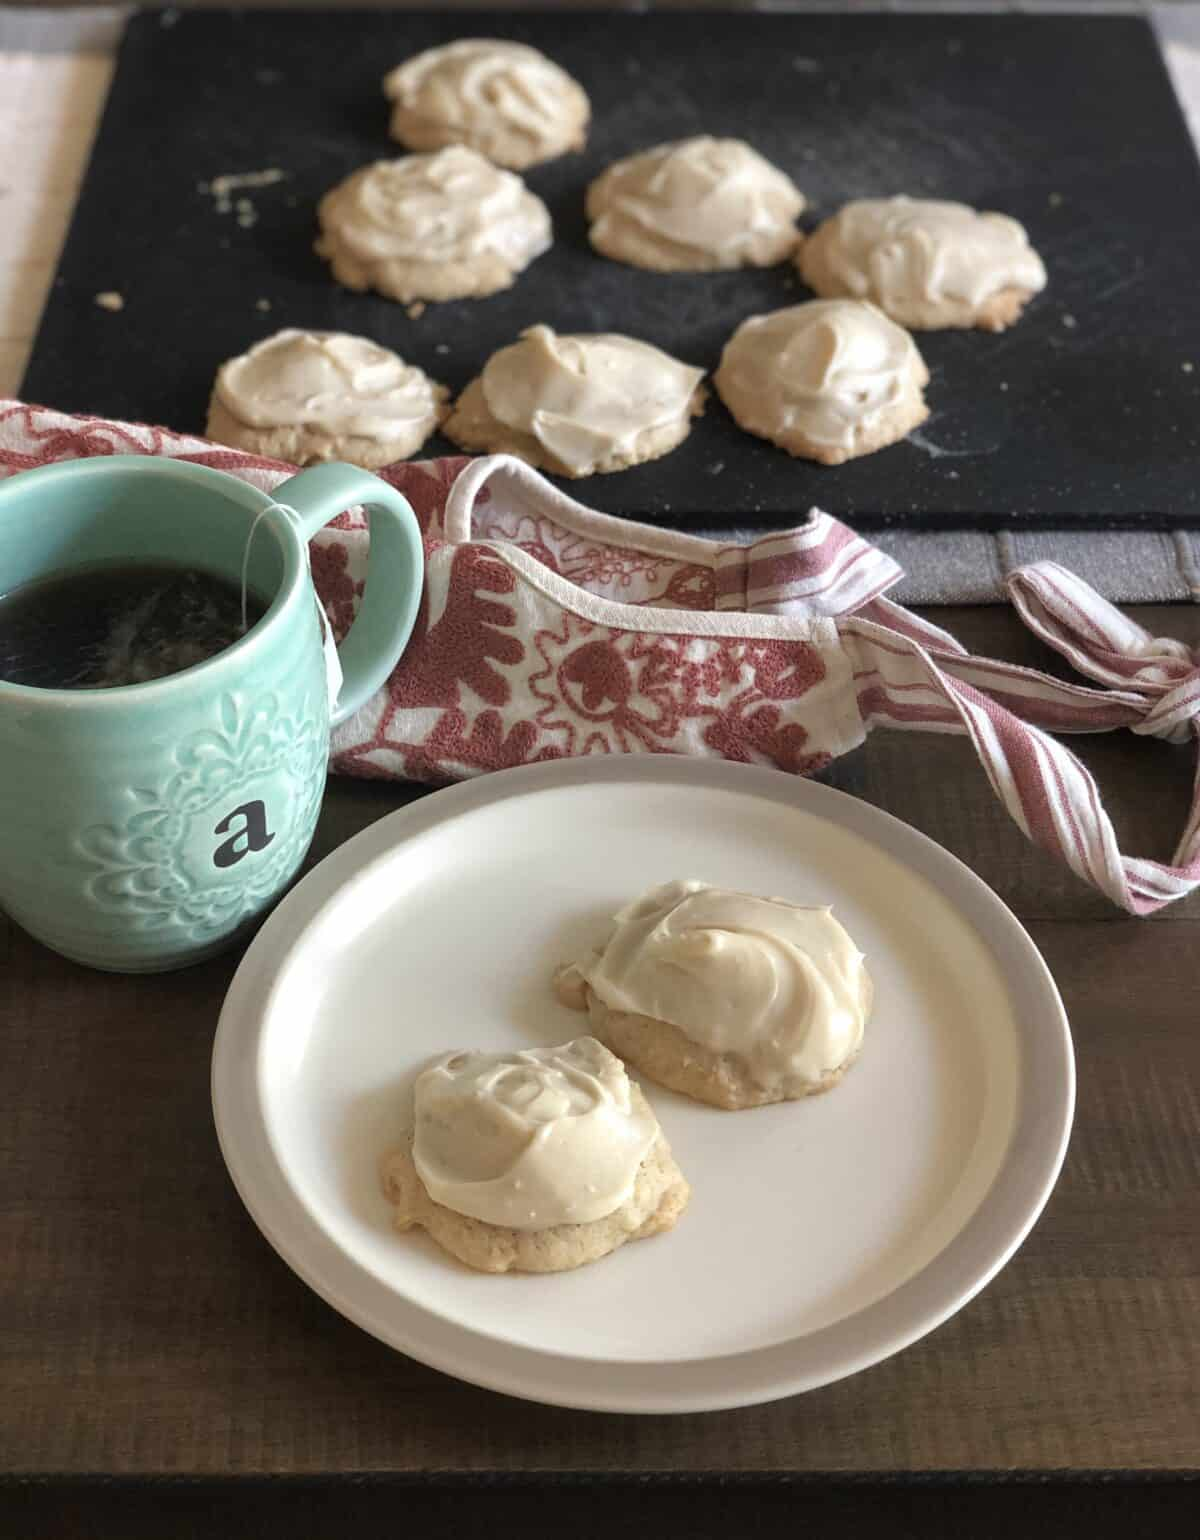 a tan colored plate with two apple and cardamom cookies next to a teal coffee mug on a table with a pink apron and more cookies on a black cutting board in the background all set on a wood dining table